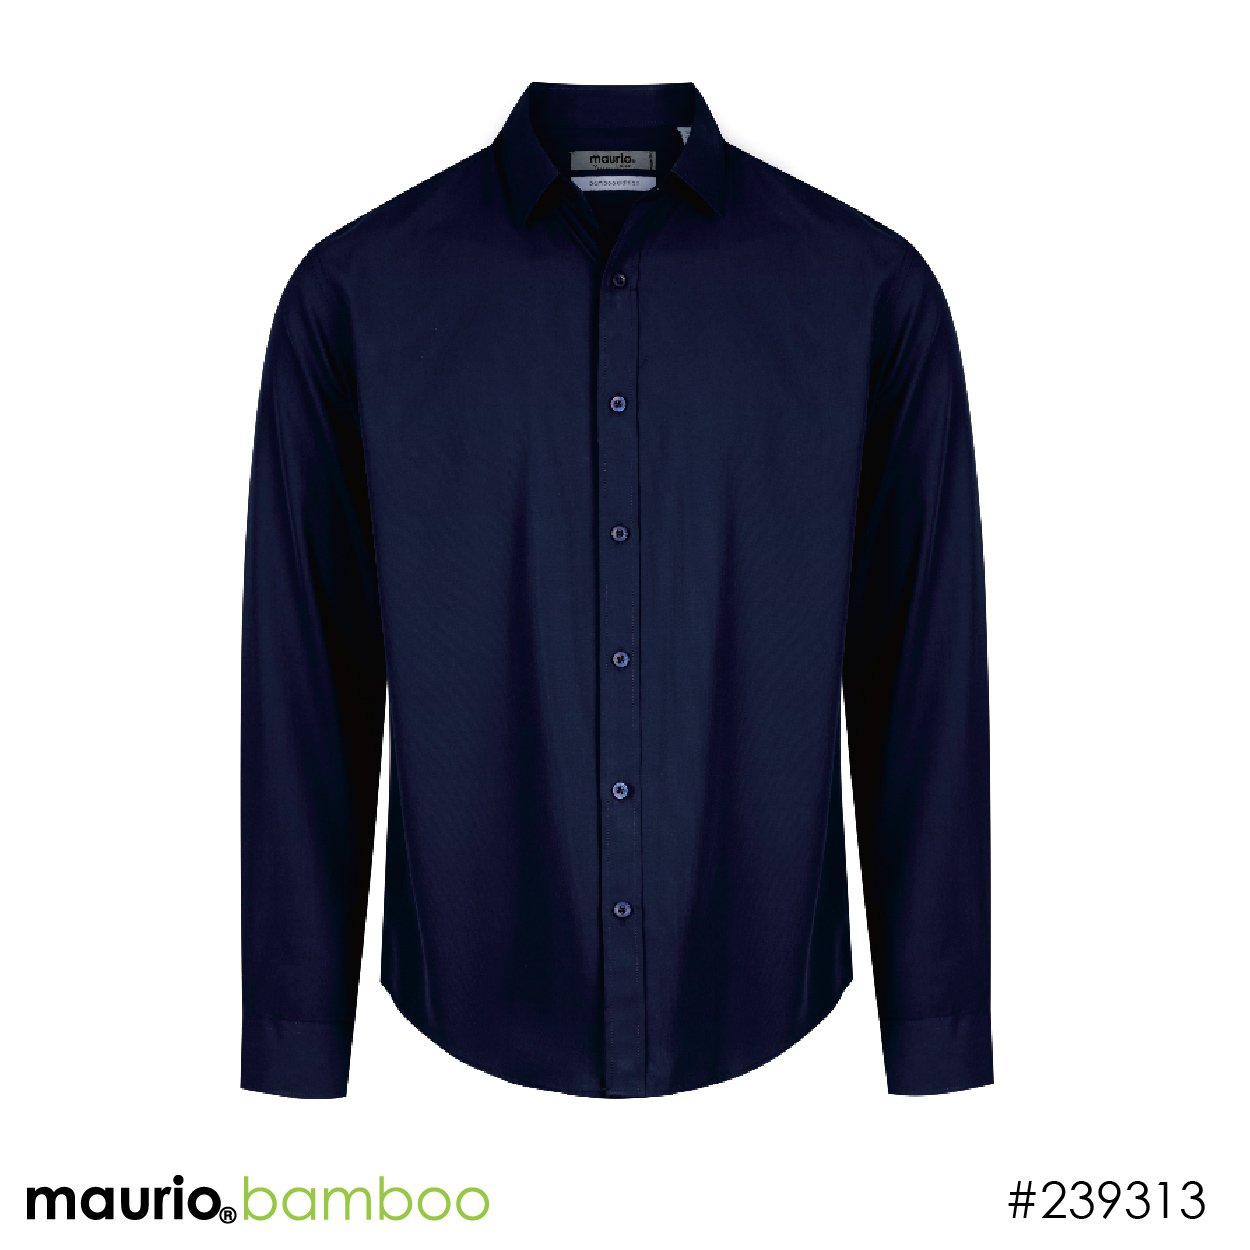 Dress shirt bamboo fabric - navy